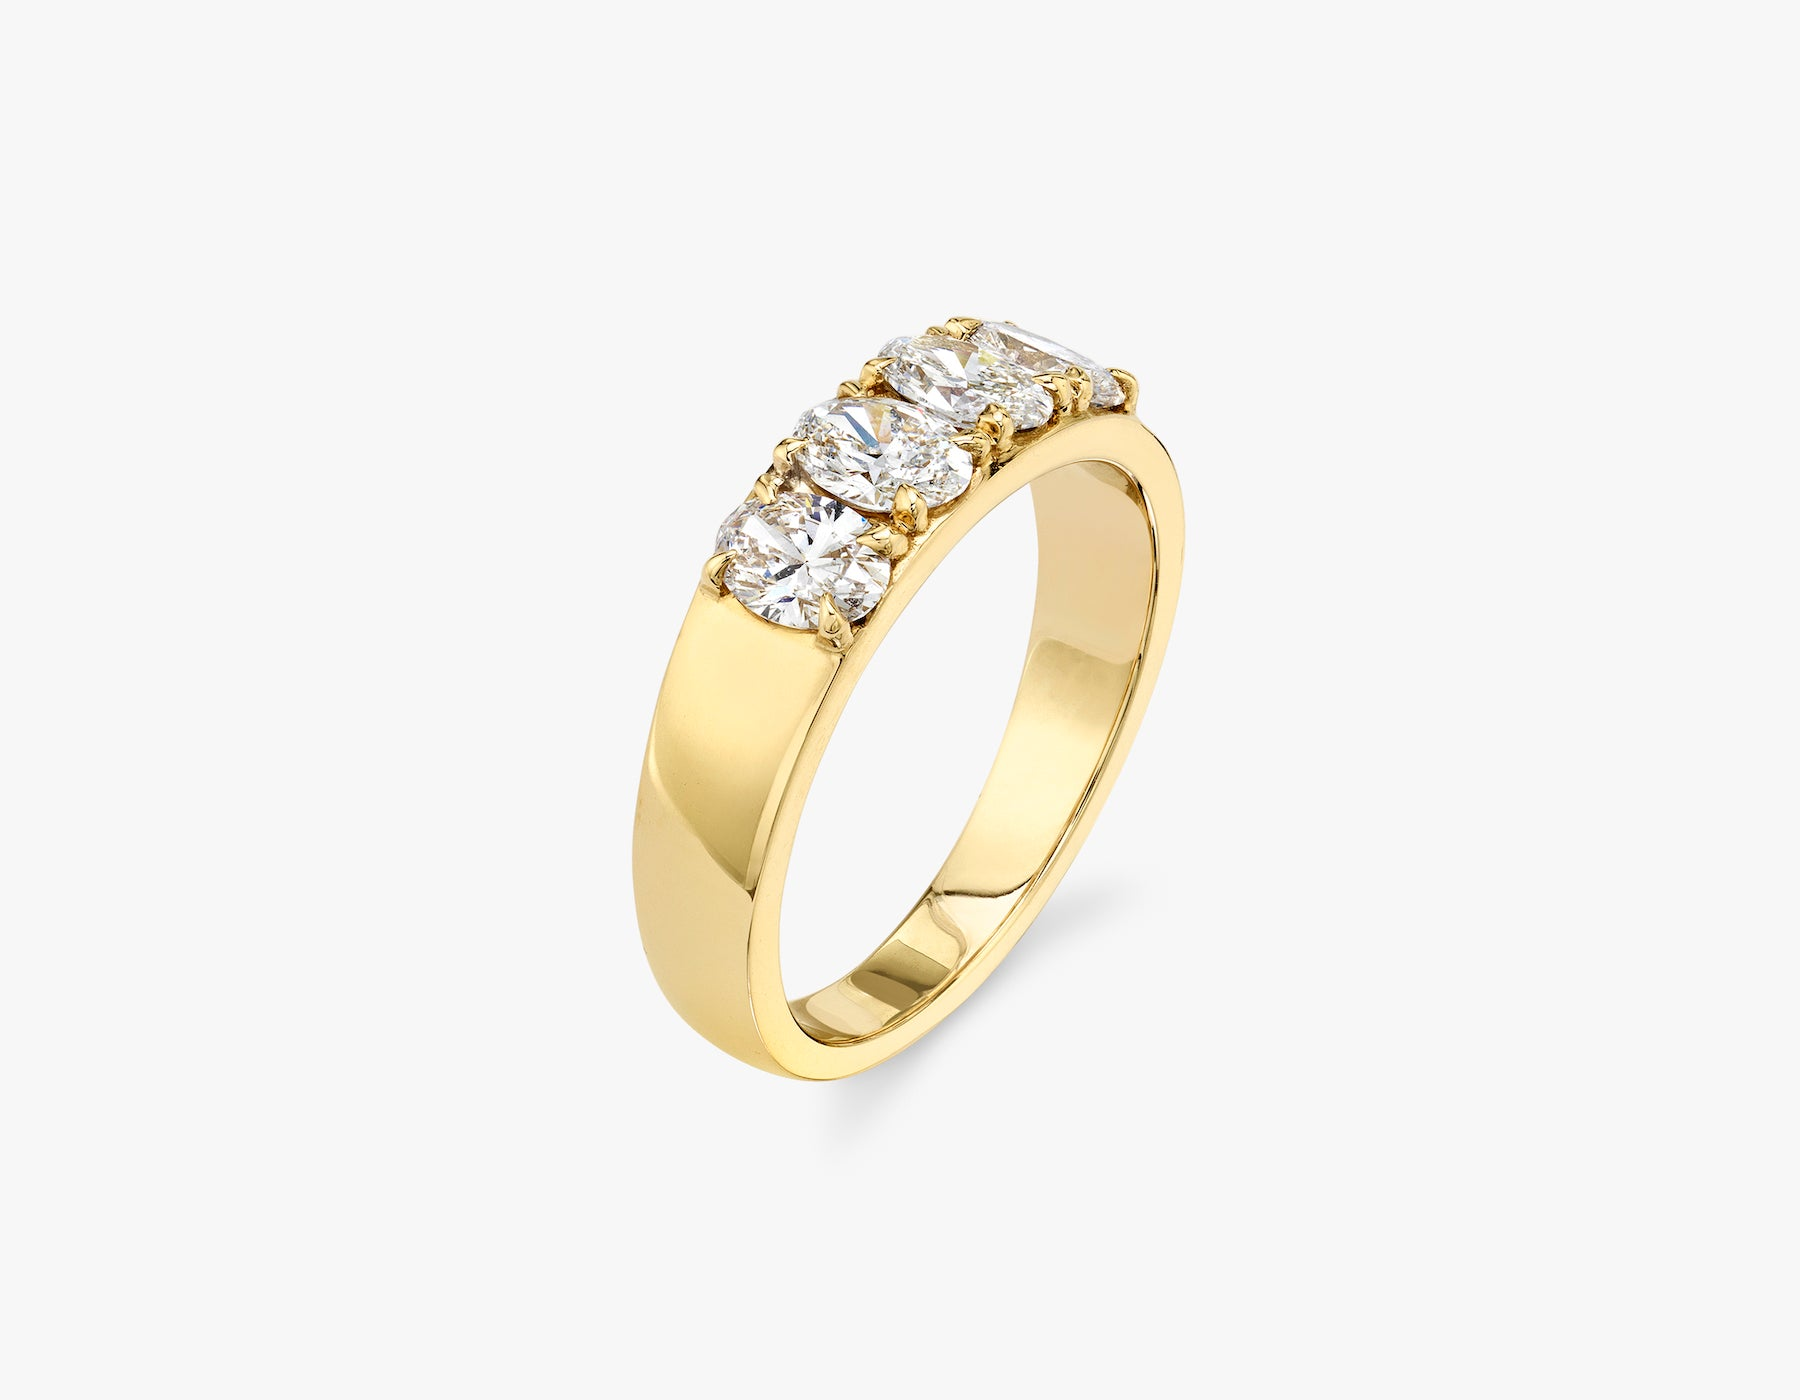 Vrai classic elegant Oval Diamond Tetrad Band .25ct Oval Diamond Ring, 14K Yellow Gold